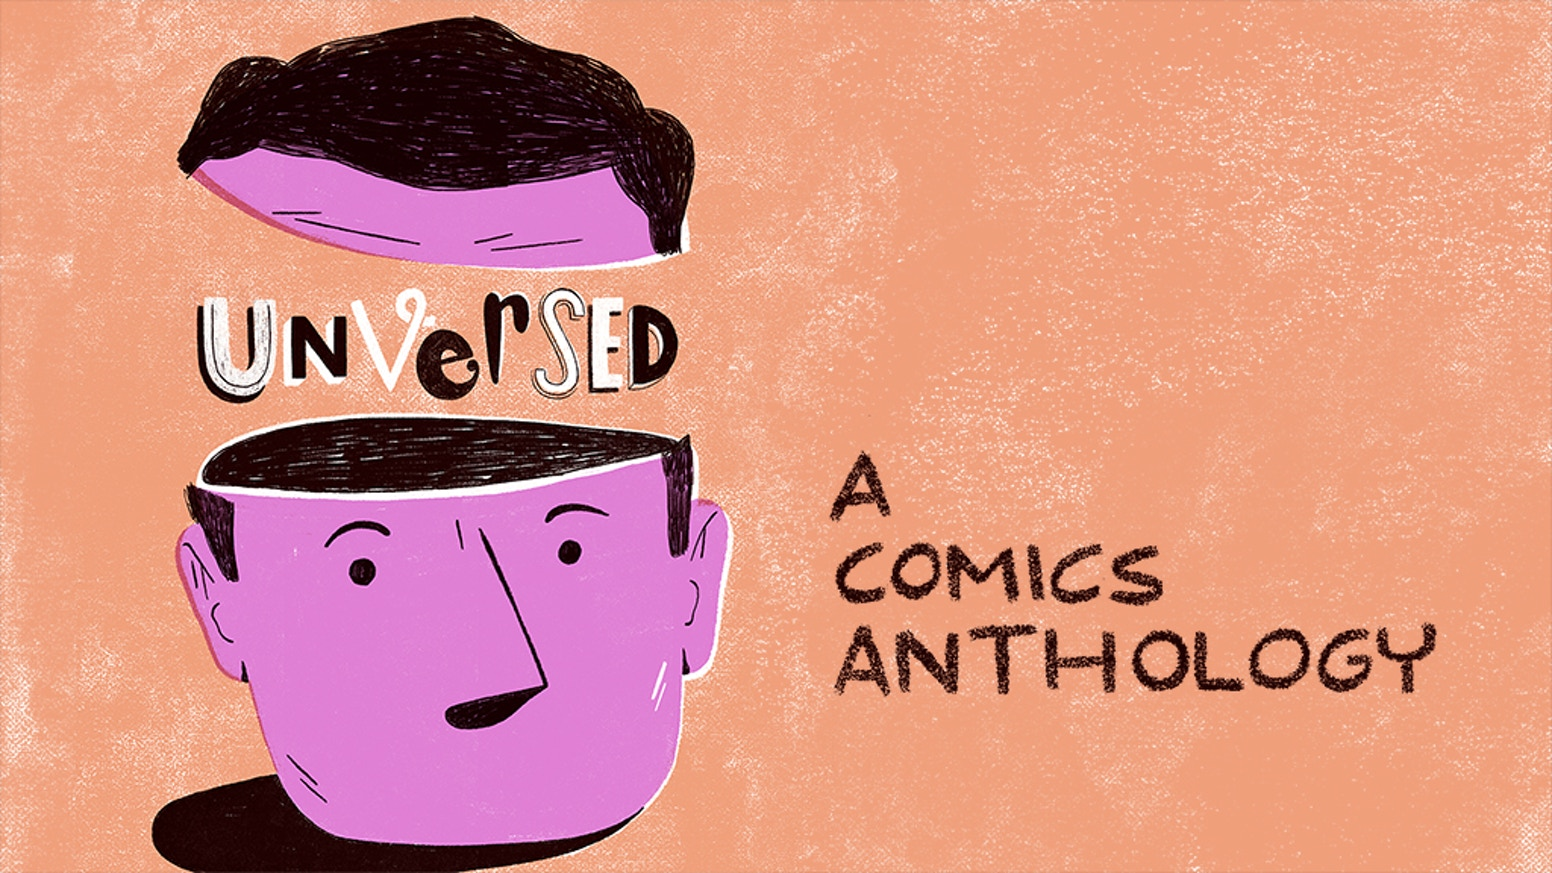 Unversed is the first installment of a comics anthology published by students - successfully funded on May 9th, 2017. Our last book will go live in May of 2019! Keep your eyes peeled!